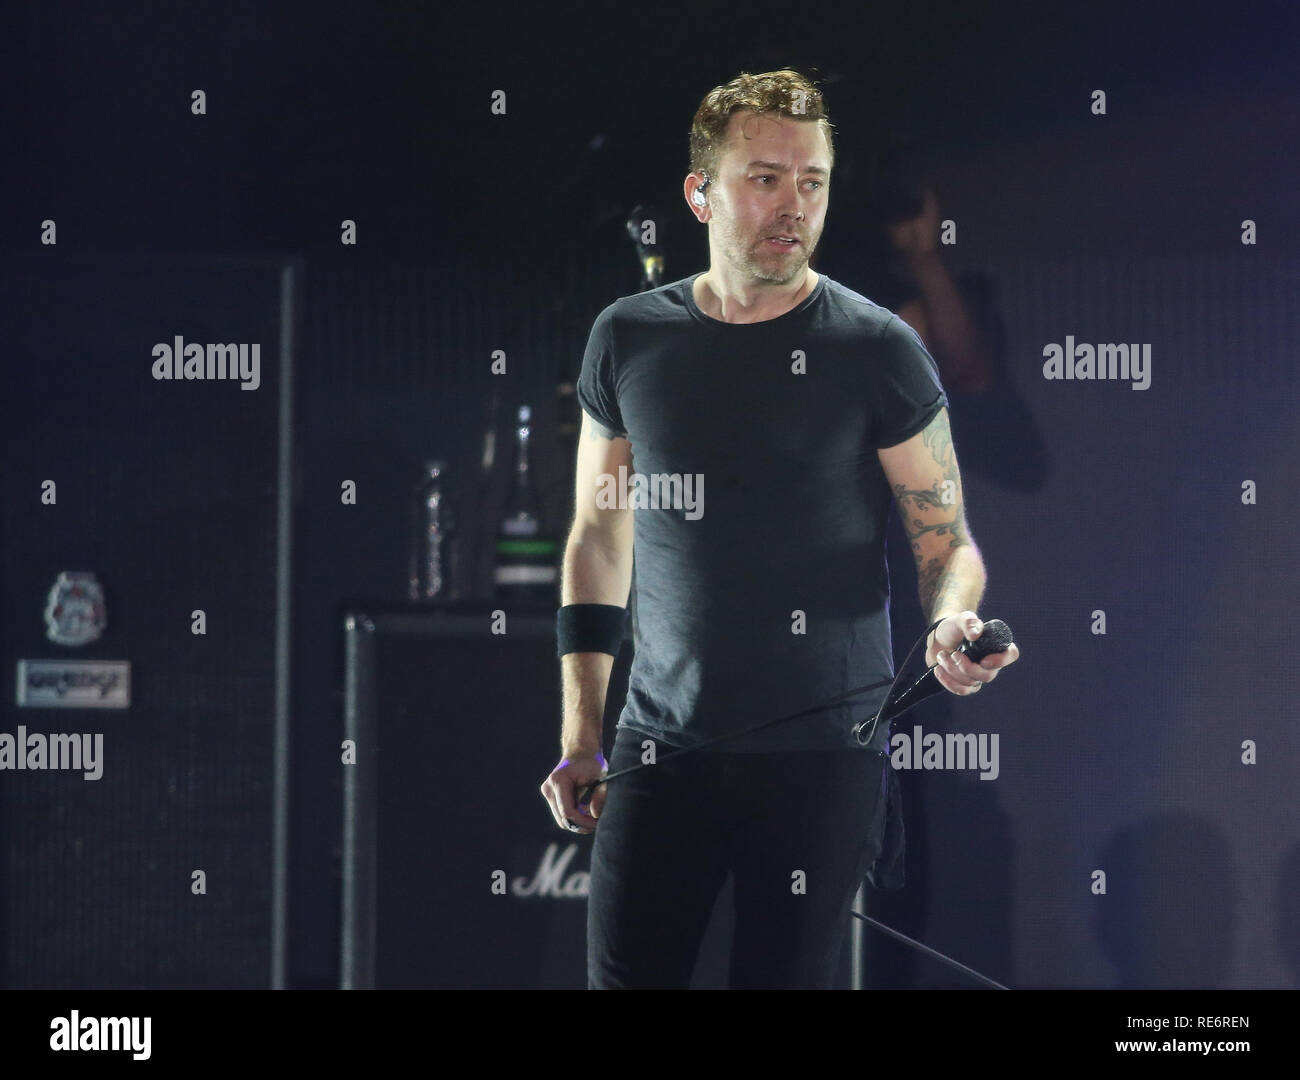 California, USA. 19th Jan, 2019. Rise Against and Tom Morello perform at iHeartRadio ALTer Ego '19 on January 19, 2019 at the Forum in Inglewood, California. Photography by Christopher Victorio/imageSPACE/MediaPunch Credit: MediaPunch Inc/Alamy Live News - Stock Image